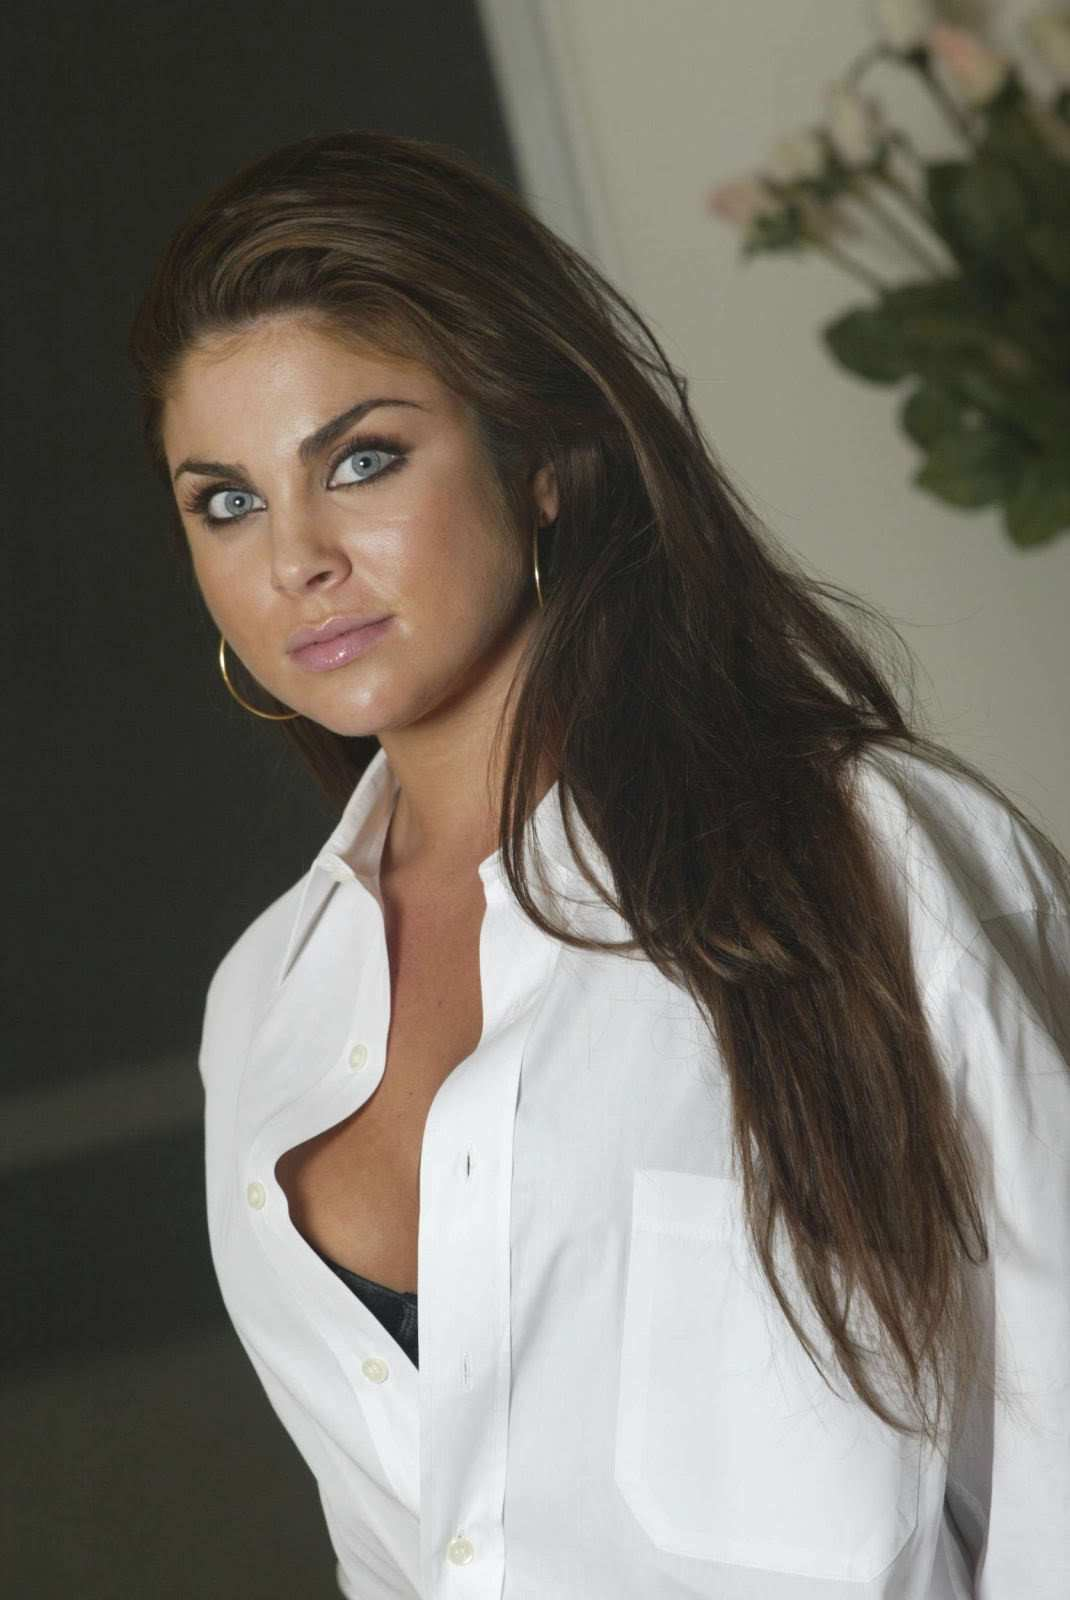 Nadia Bjorlin - Hot In Jeans - Sexy Actress Pictures | Hot Actress Pictures - ActressSnaps.com